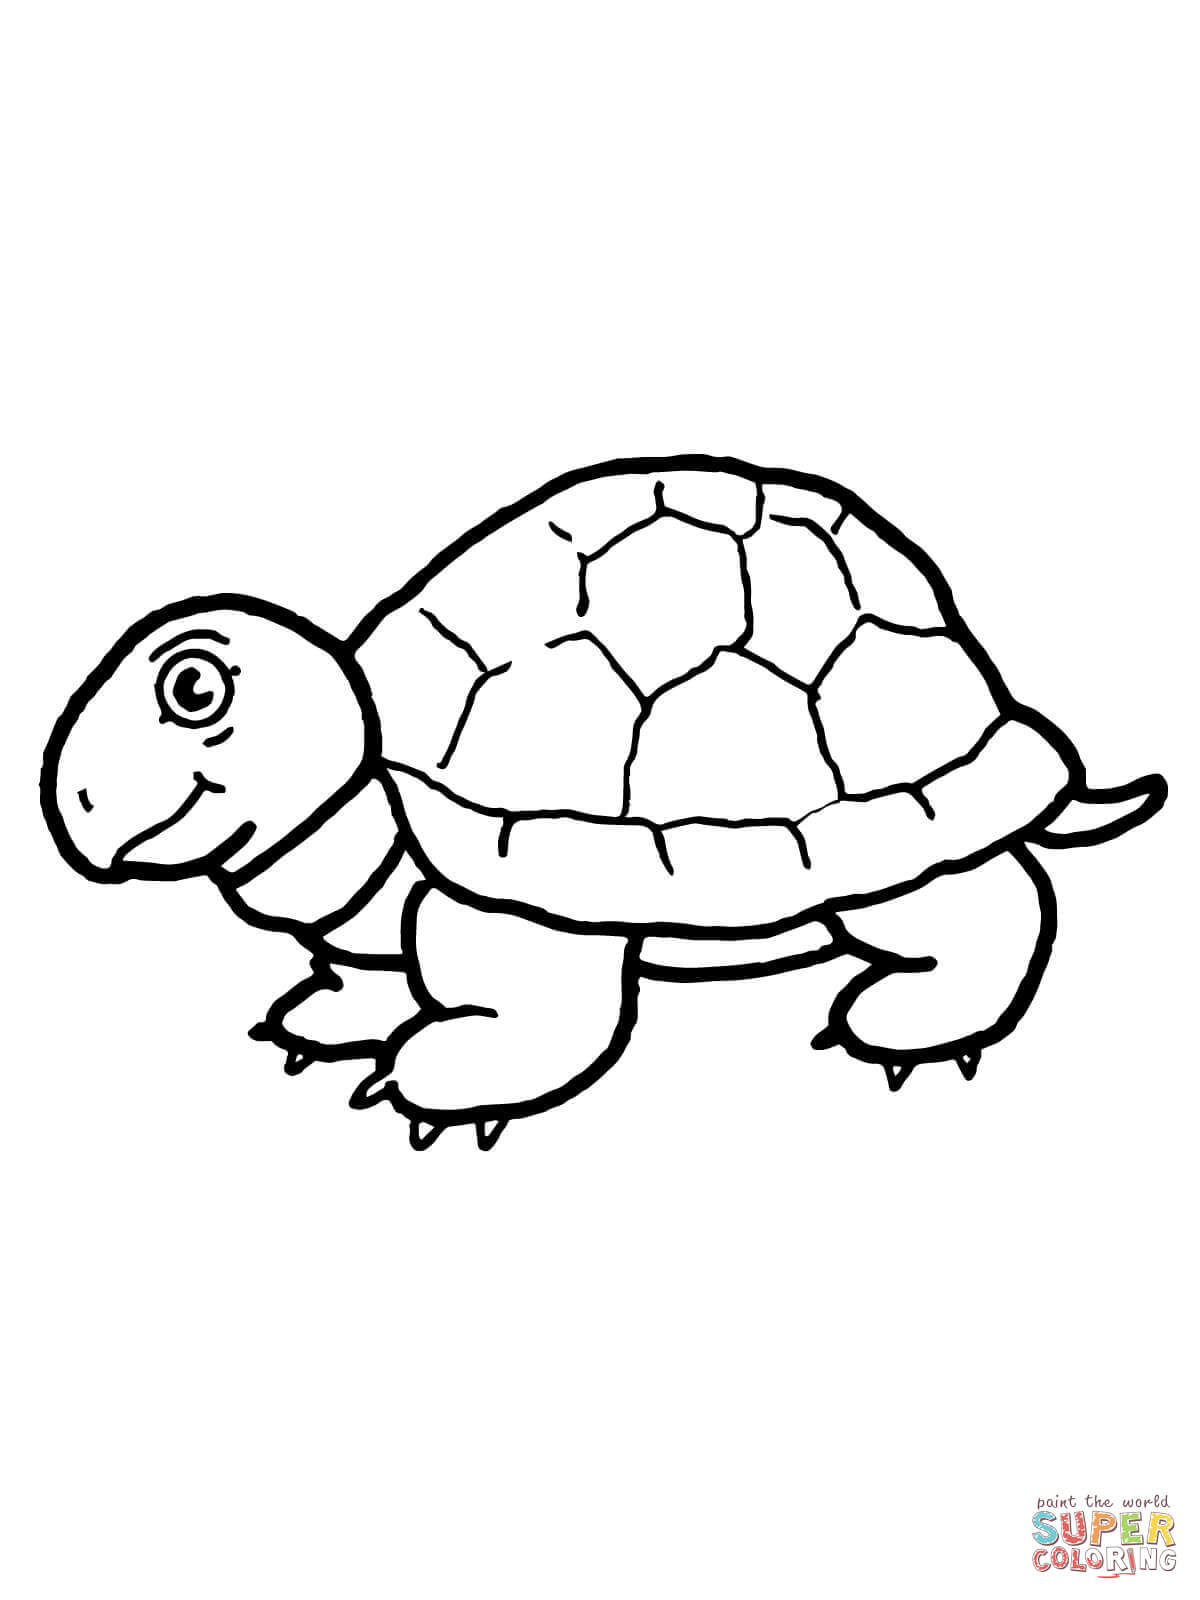 Tortoise coloring #2, Download drawings